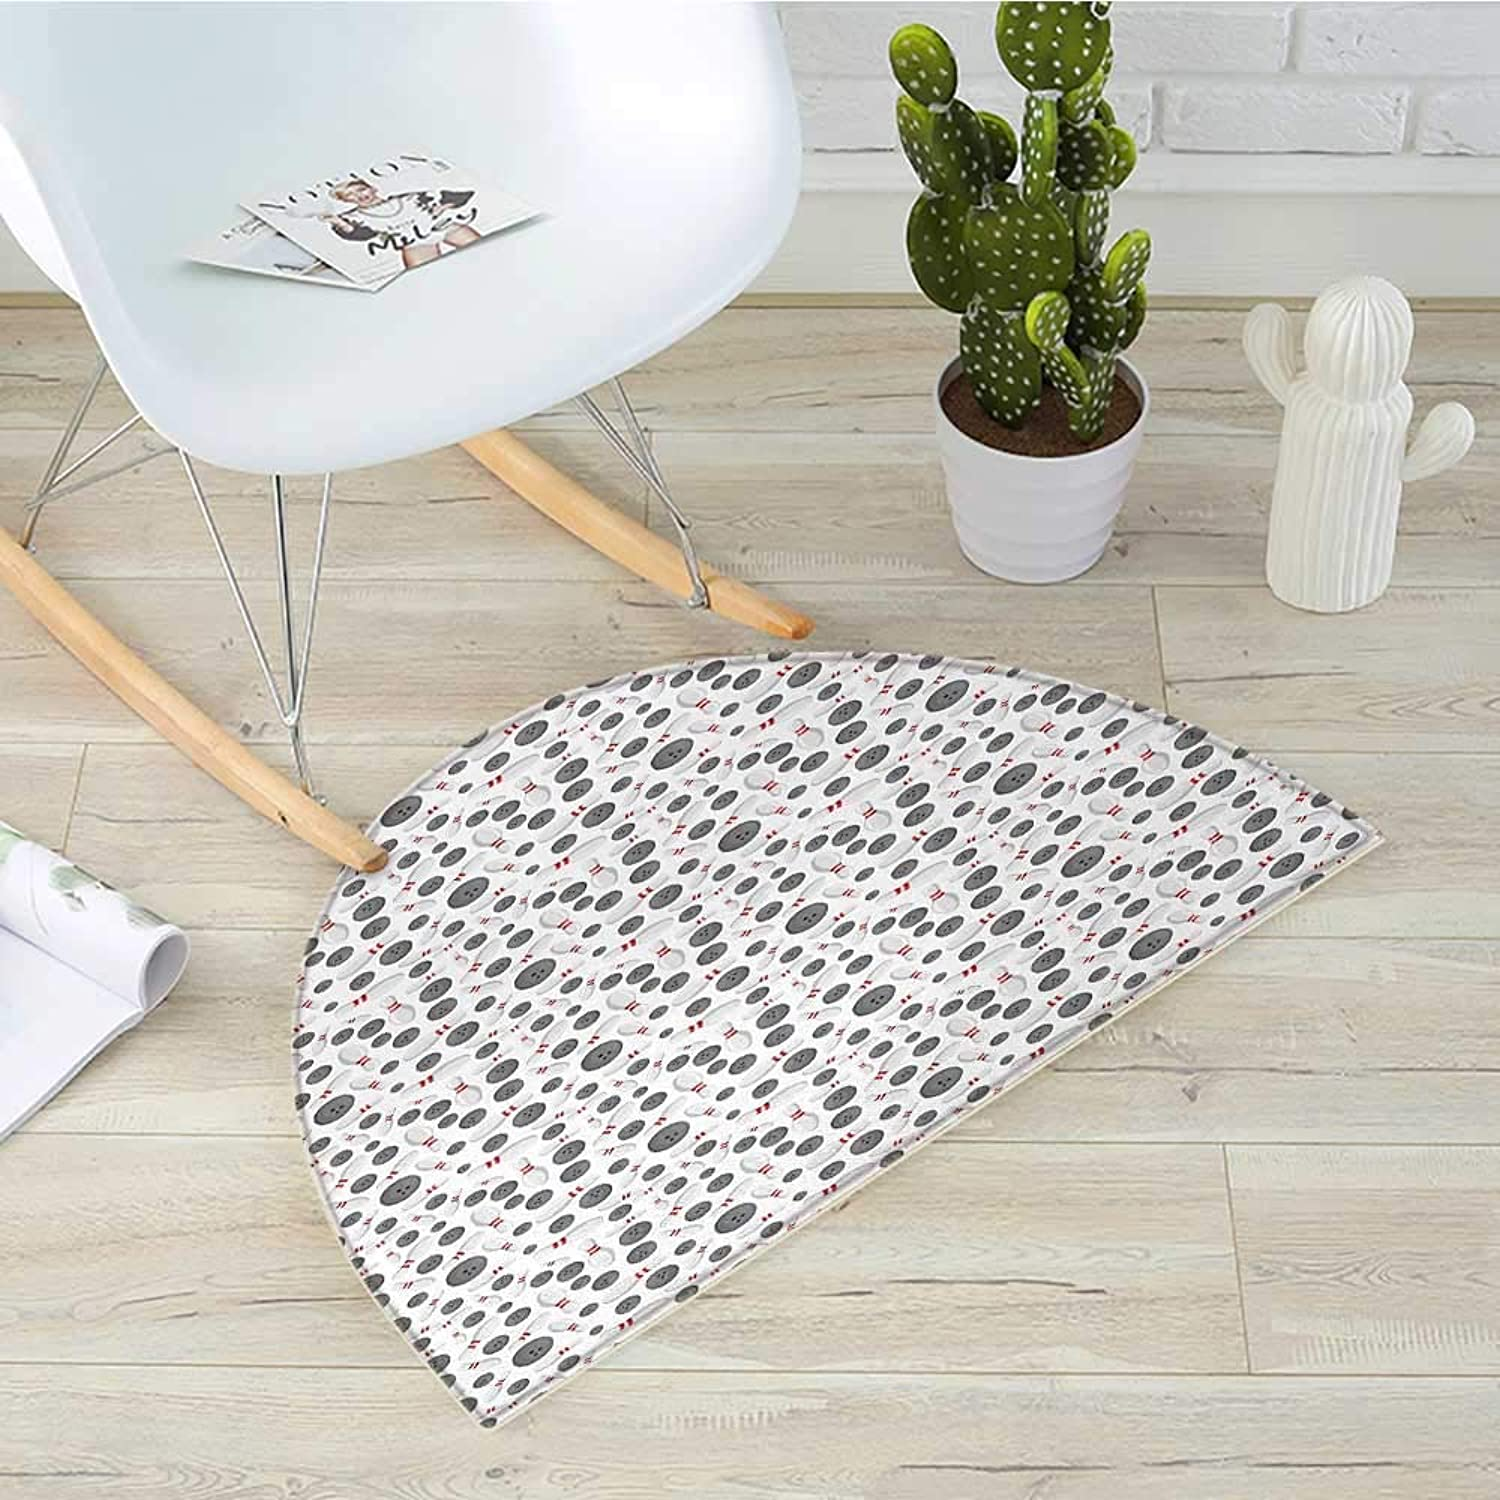 Bowling Half Round Door mats Realistic Graphic Game Icons Scattered on Plain Backdrop Competition and Fun Bathroom Mat H 31.5  xD 47.2  Grey White Red